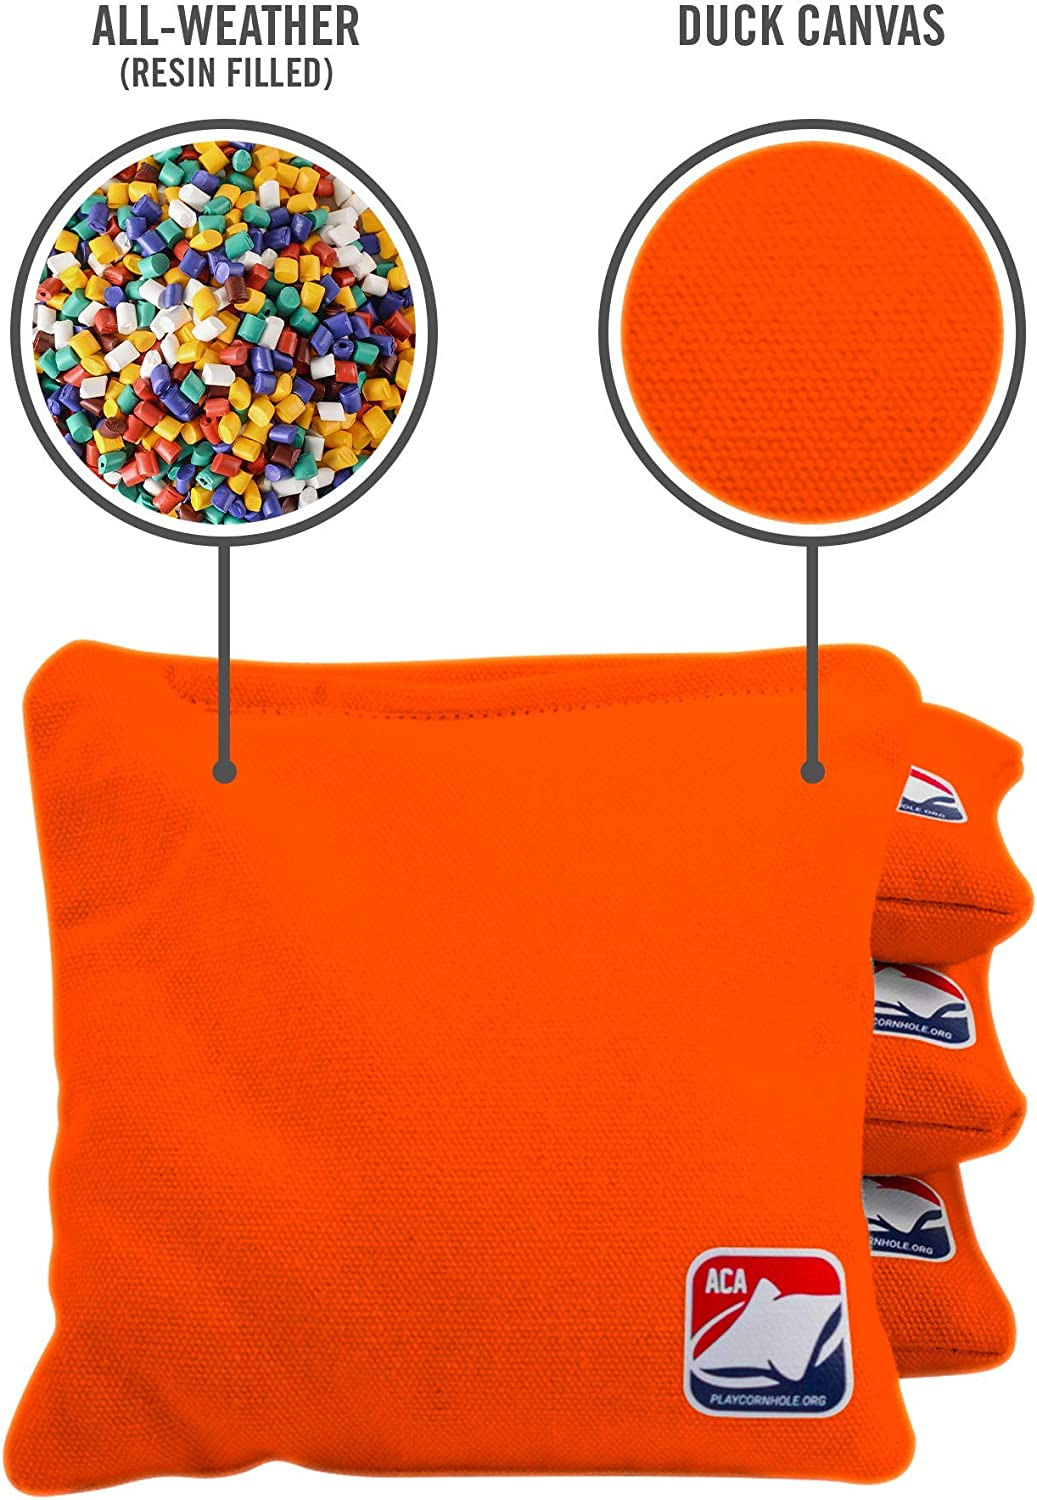 Orange Official Weather-Resistant Cornhole Bags from The American Cornhole Association 6 All-Weather Double-Stitched Resin-Filled Bean Bags for Corn Hole Outdoor Game